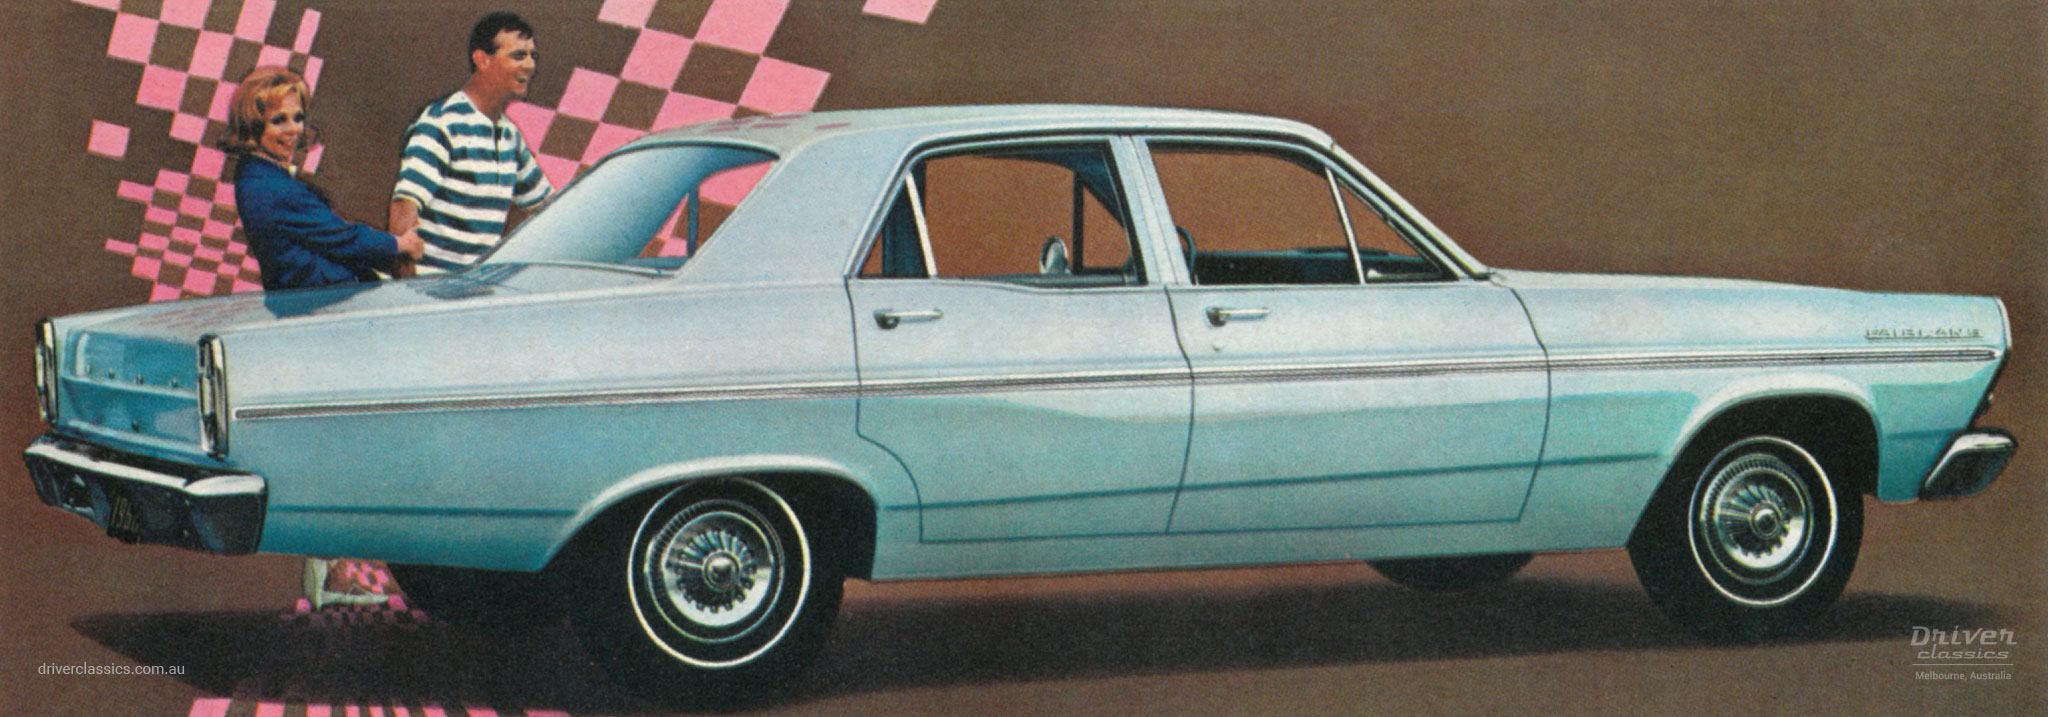 Illustration from US 1966 Ford Fairlane brochure